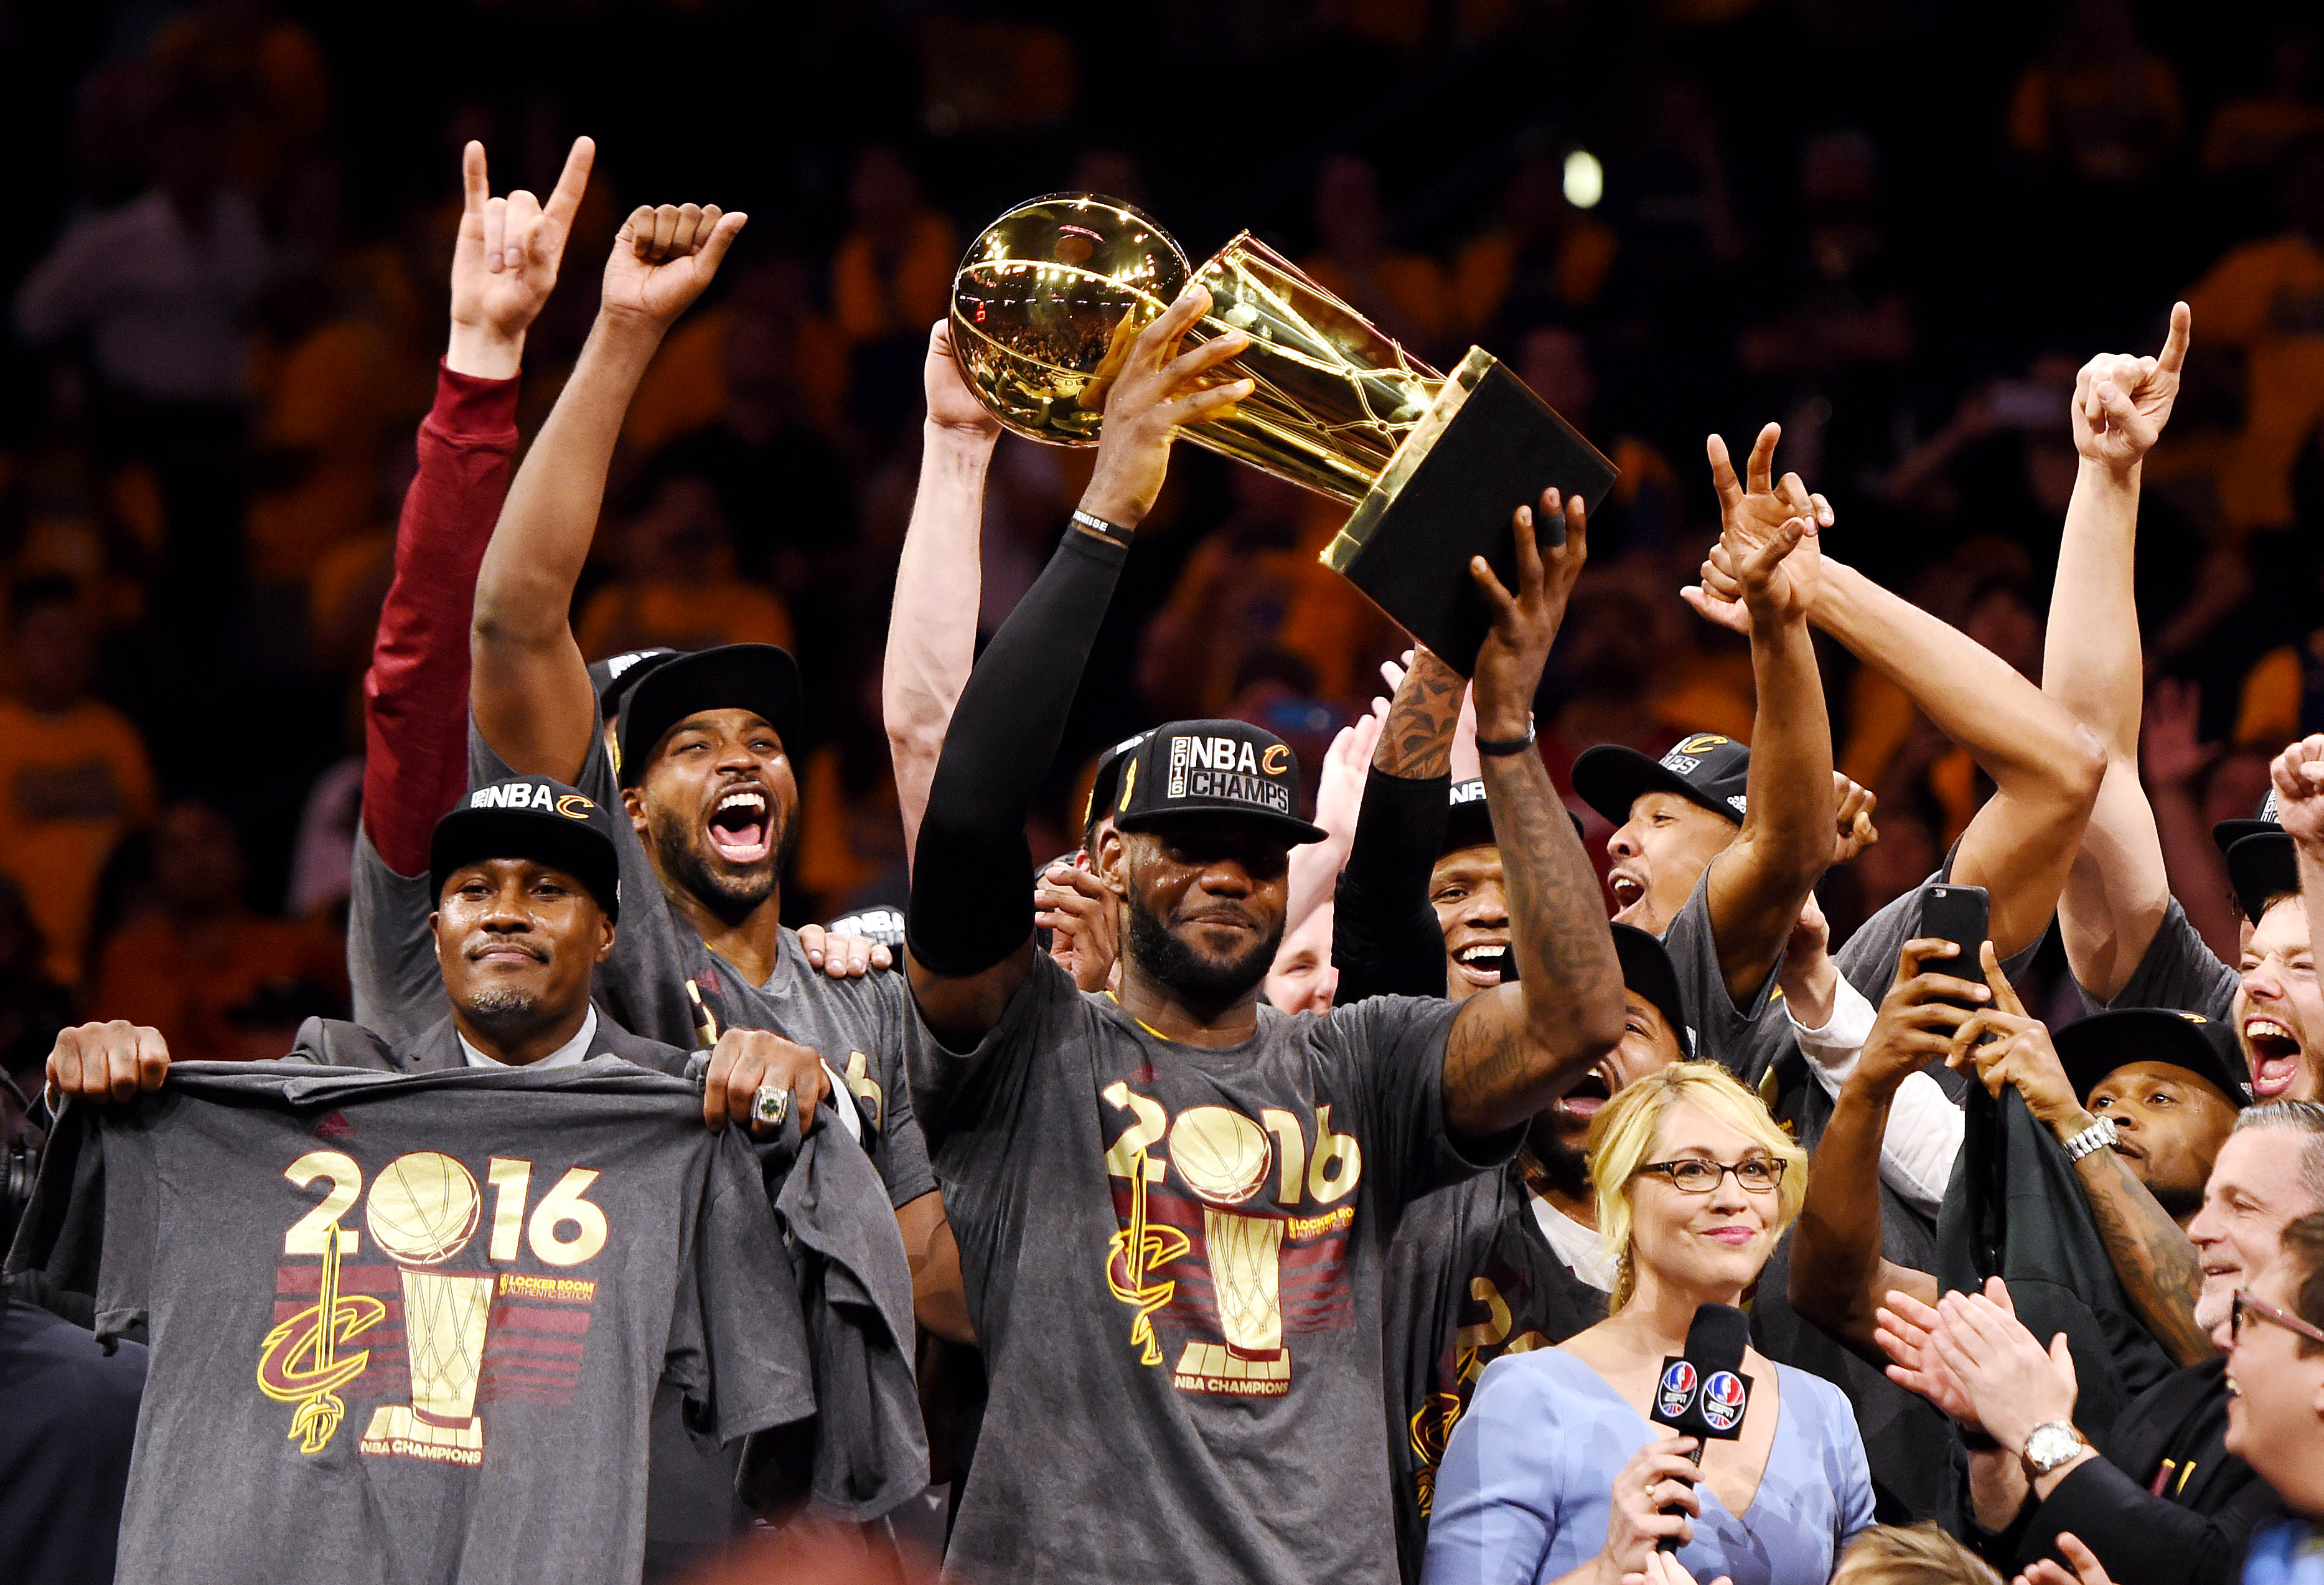 Decade of sports: LeBron's Cavs winning 2016 title was best NBA moment of the 2010s